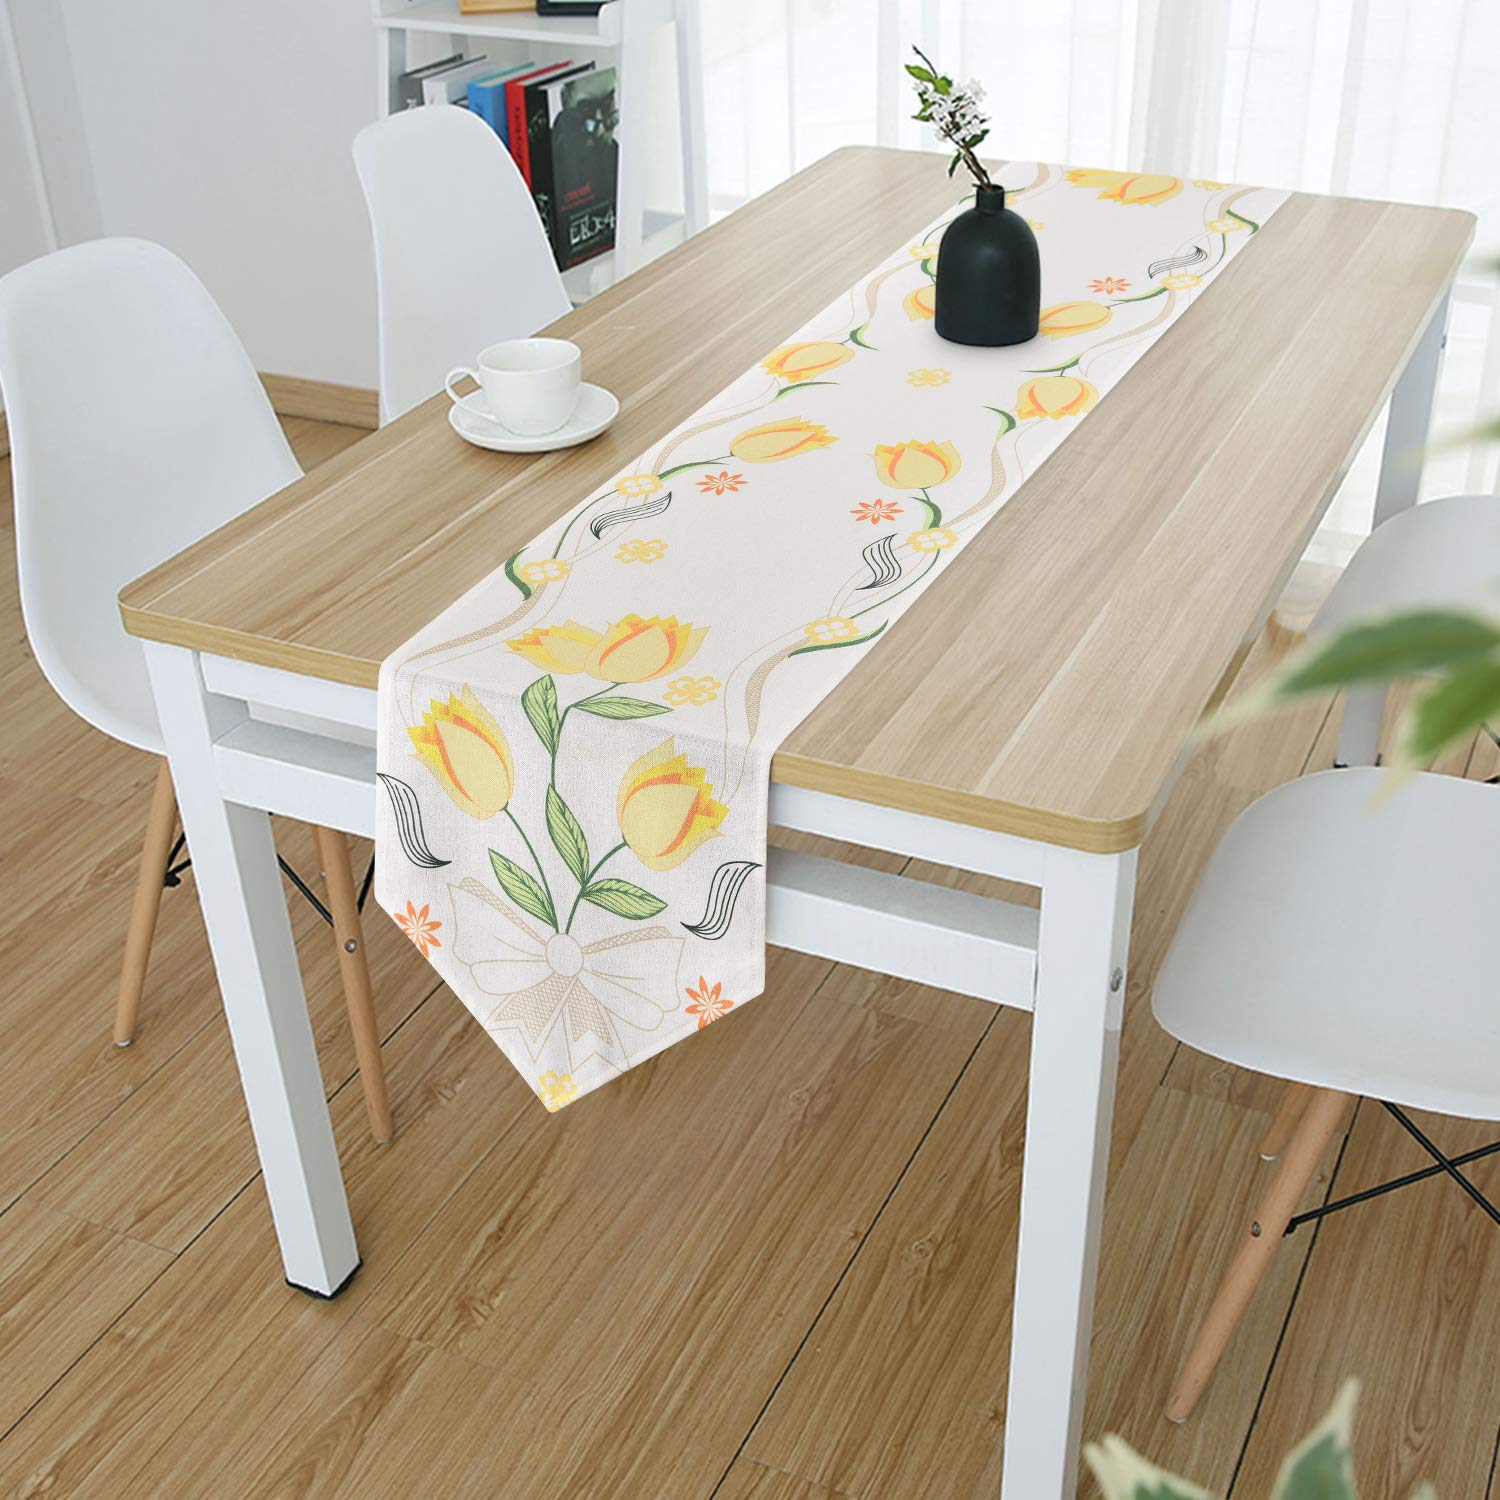 Smurfs Yingda Tulip Flowers Table Runner Yellow Floral Plant Table Runner for Catering Events, Indoor and Outdoor Parties, Daily Use, 12' × 70'